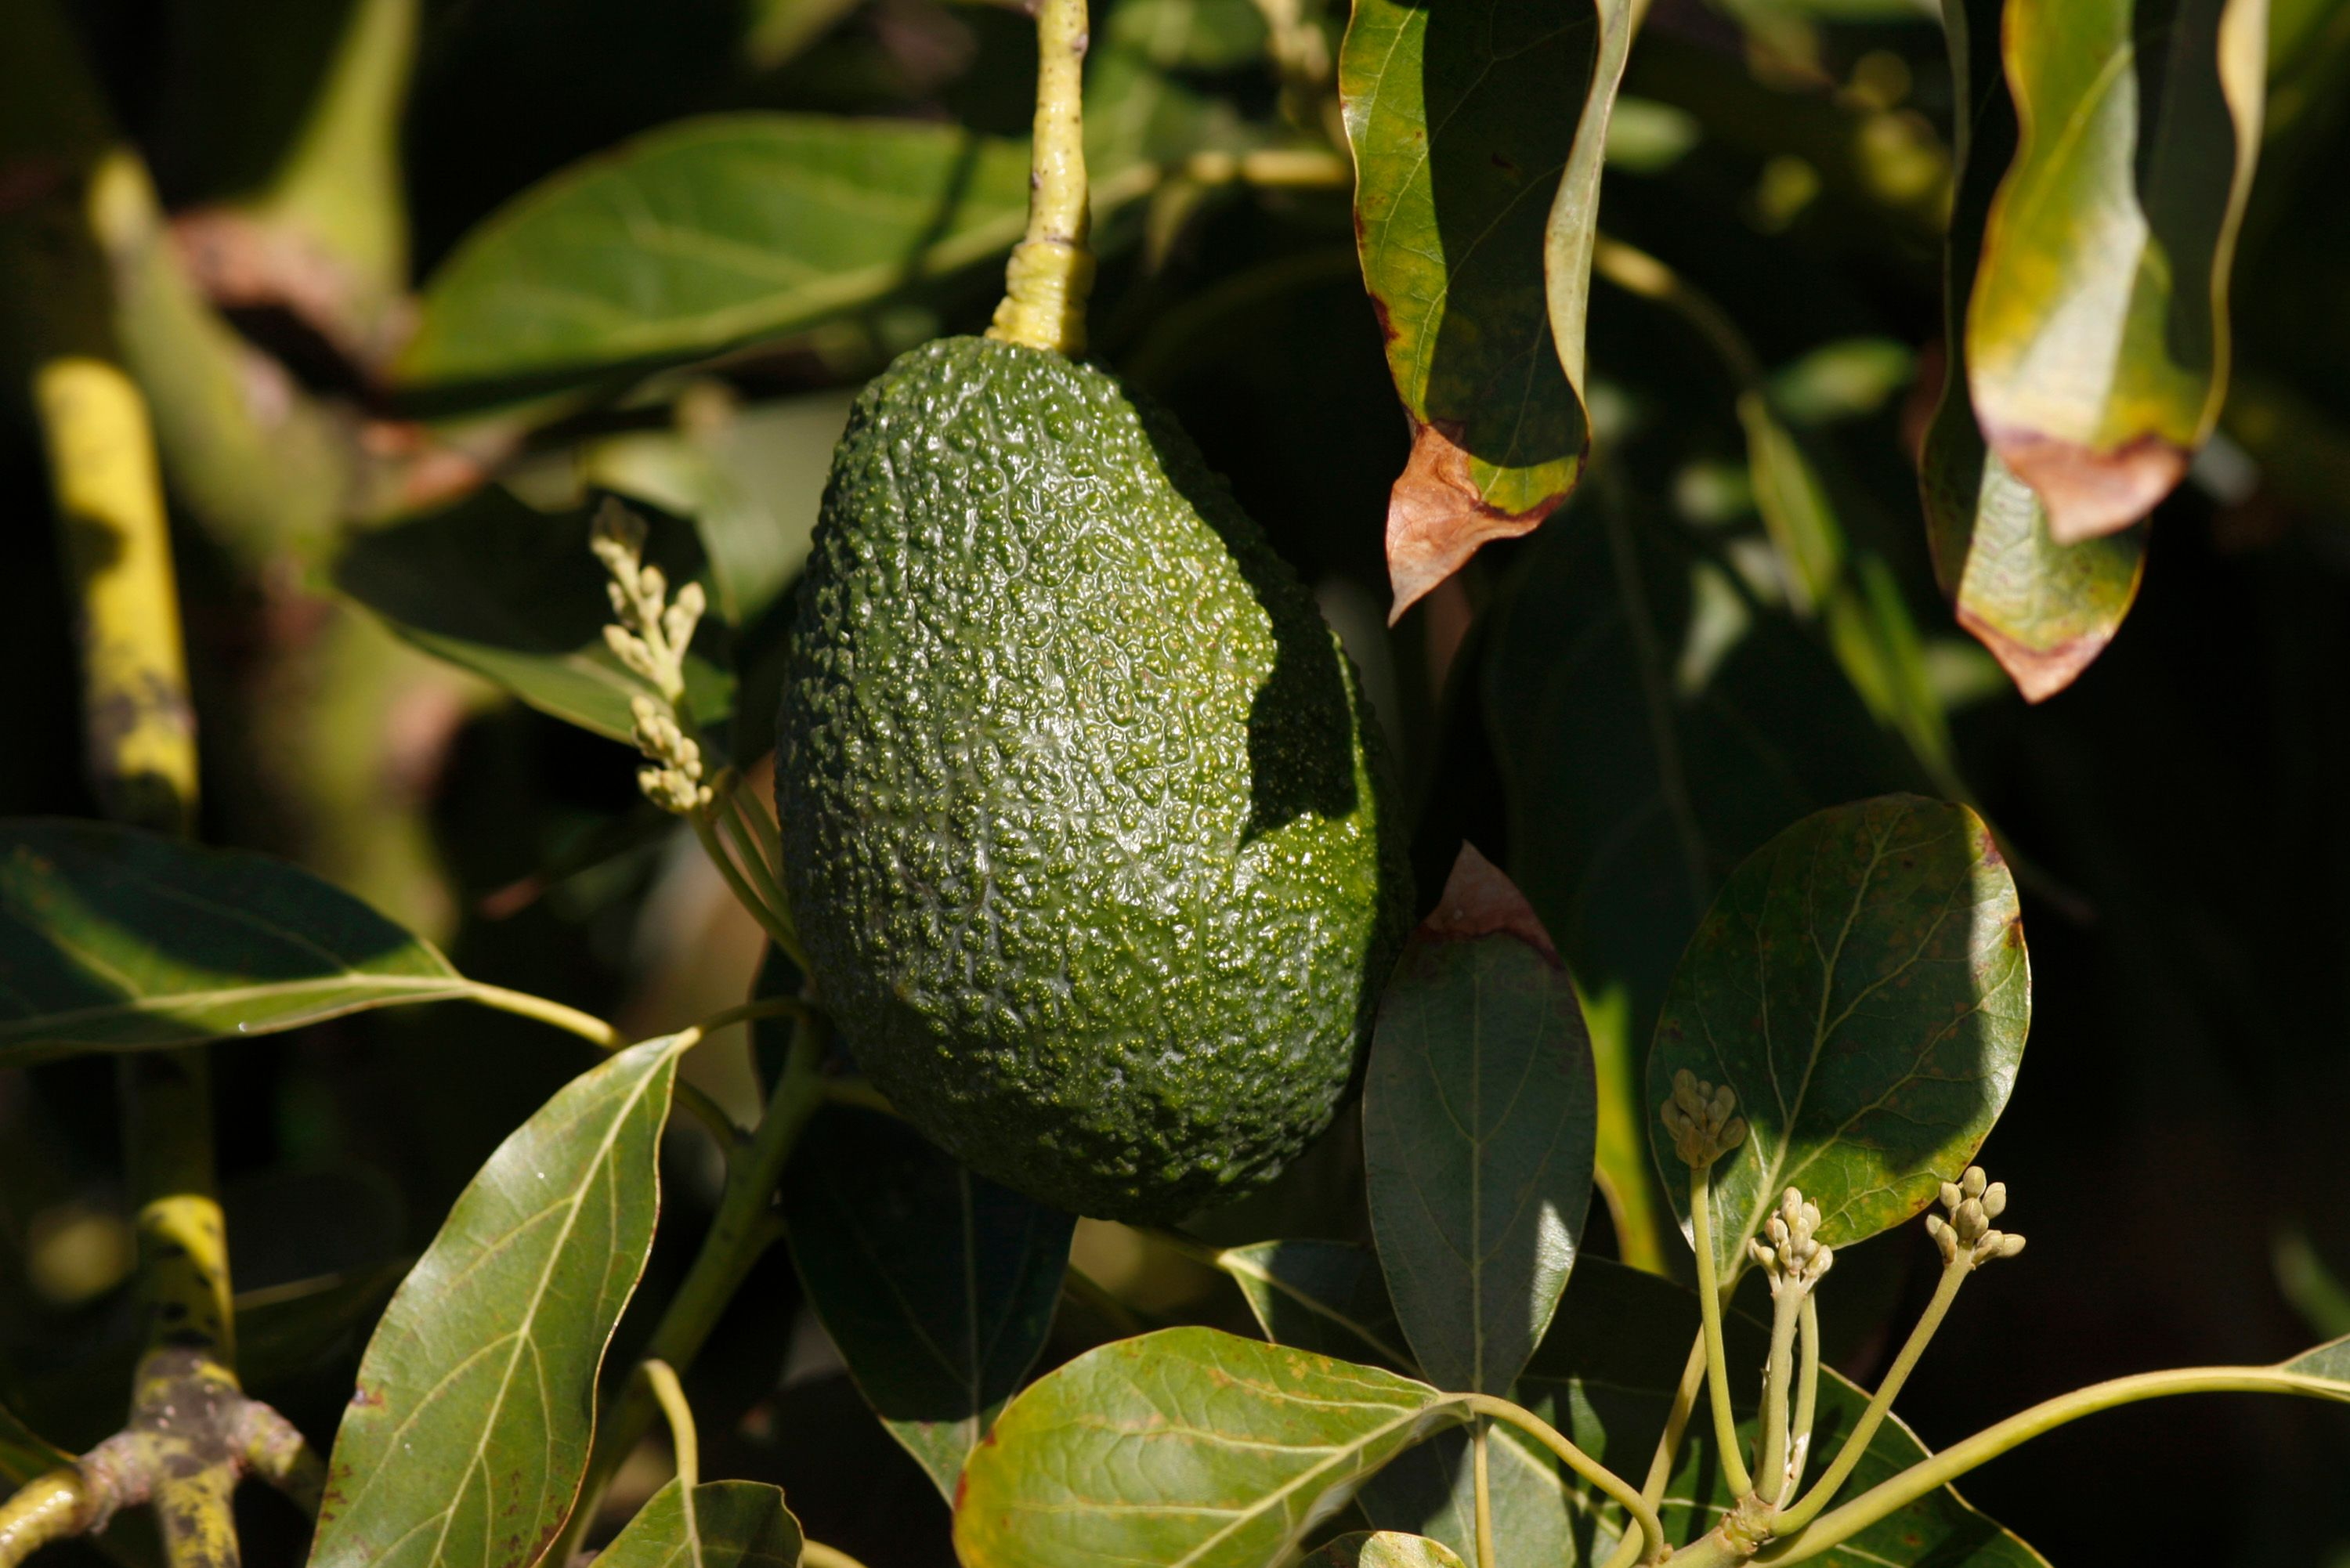 An avocado on a tree.   Source: Getty Images